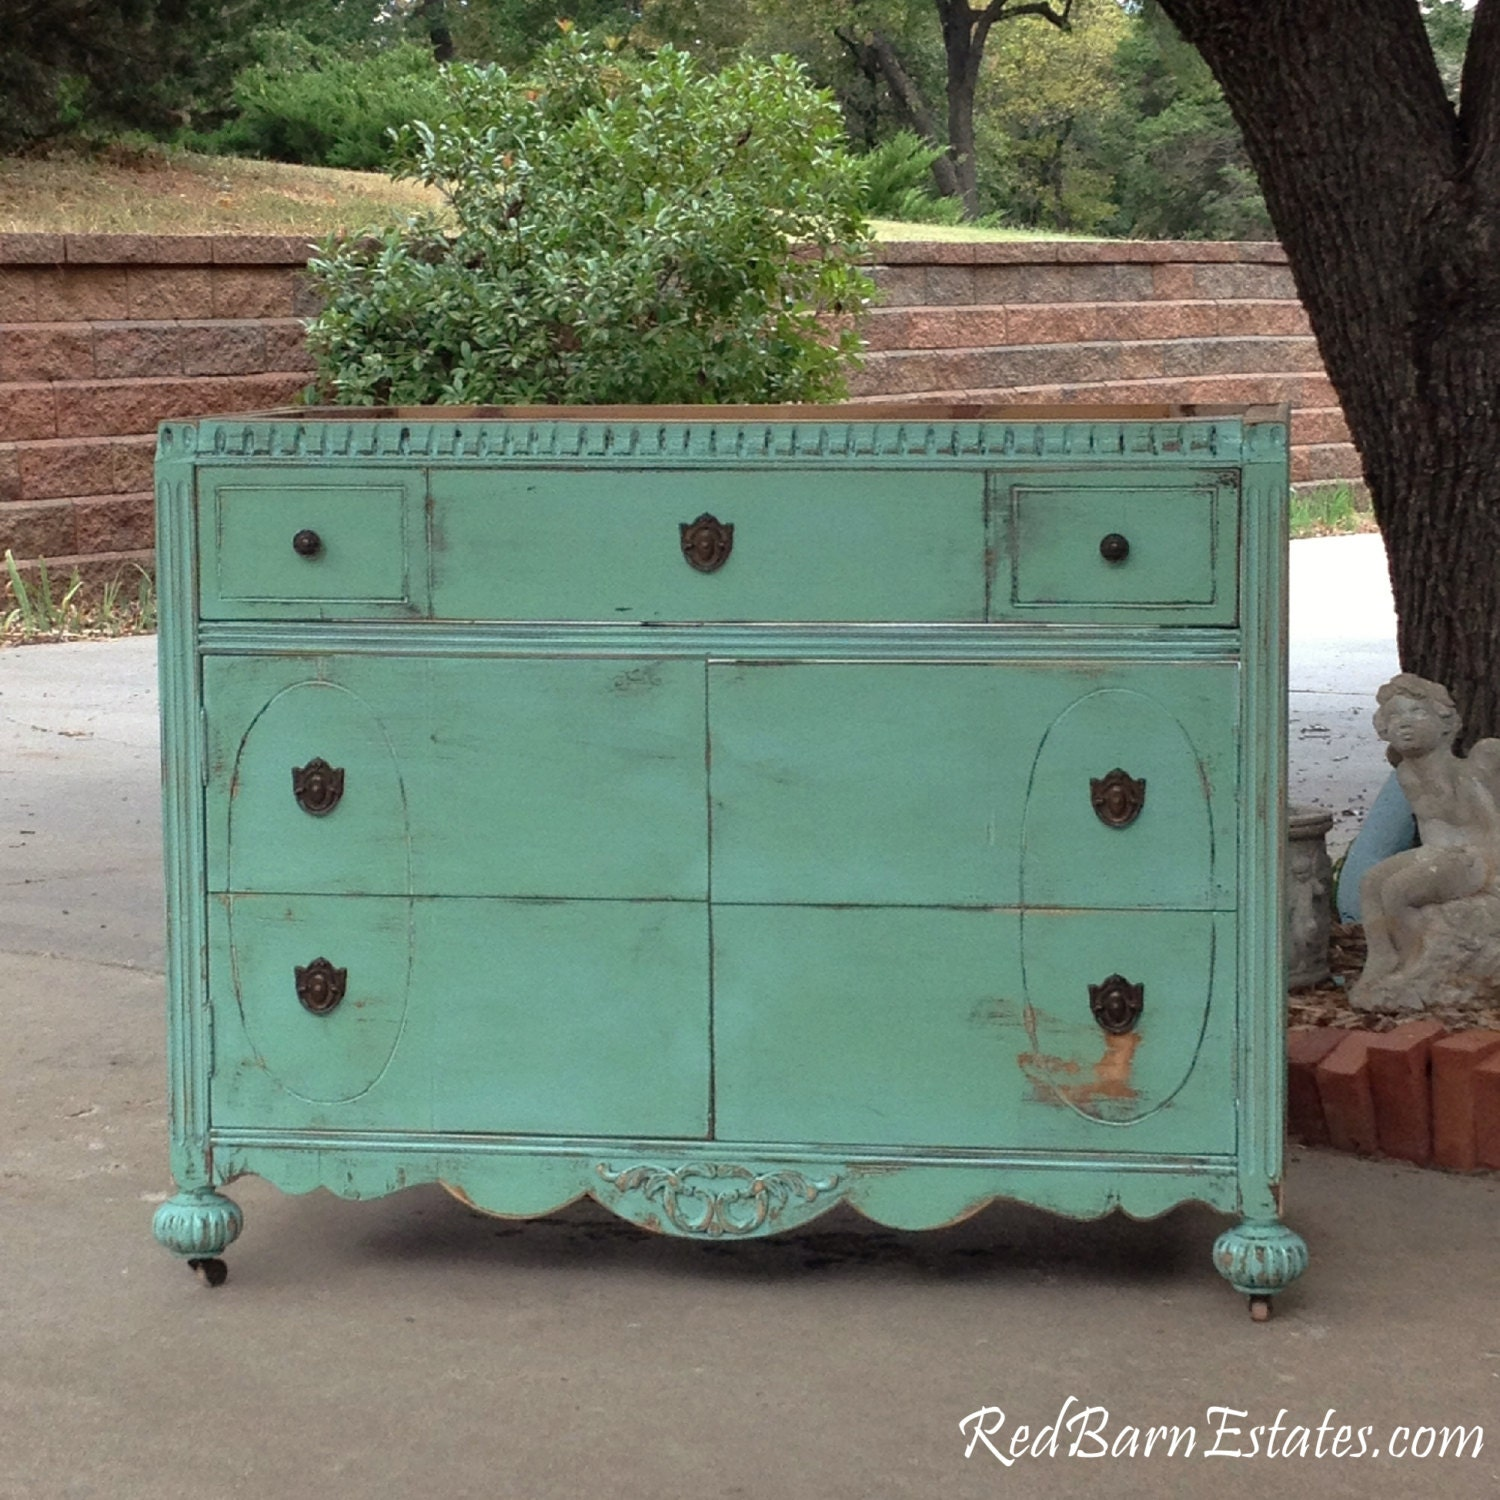 BATHROOM VANITY Shabby Chic Dresser Bathroom Vanity Cabinet CONVERTED From  Antique Dresser And Painted In Your Color